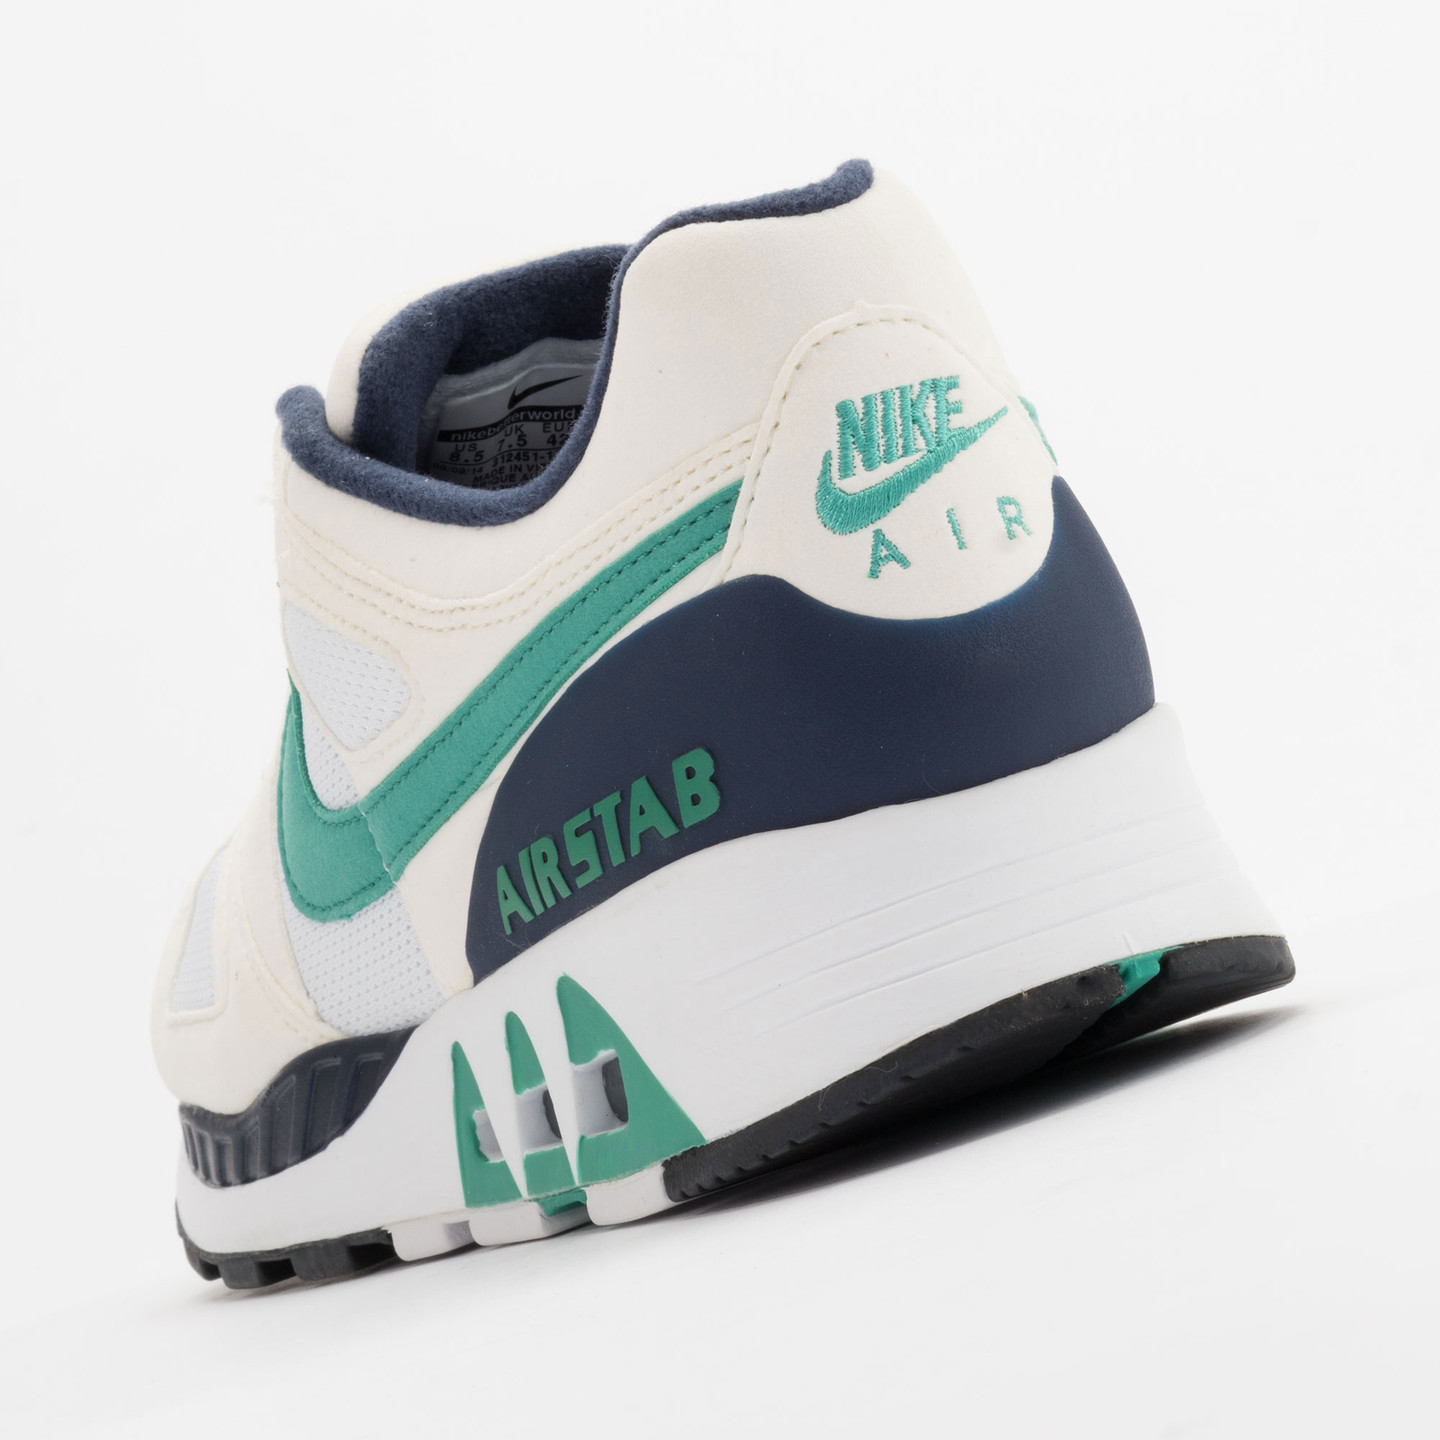 Nike Air Stab White/Emerald Green-Sl-Mid Nvy 312451-100-41